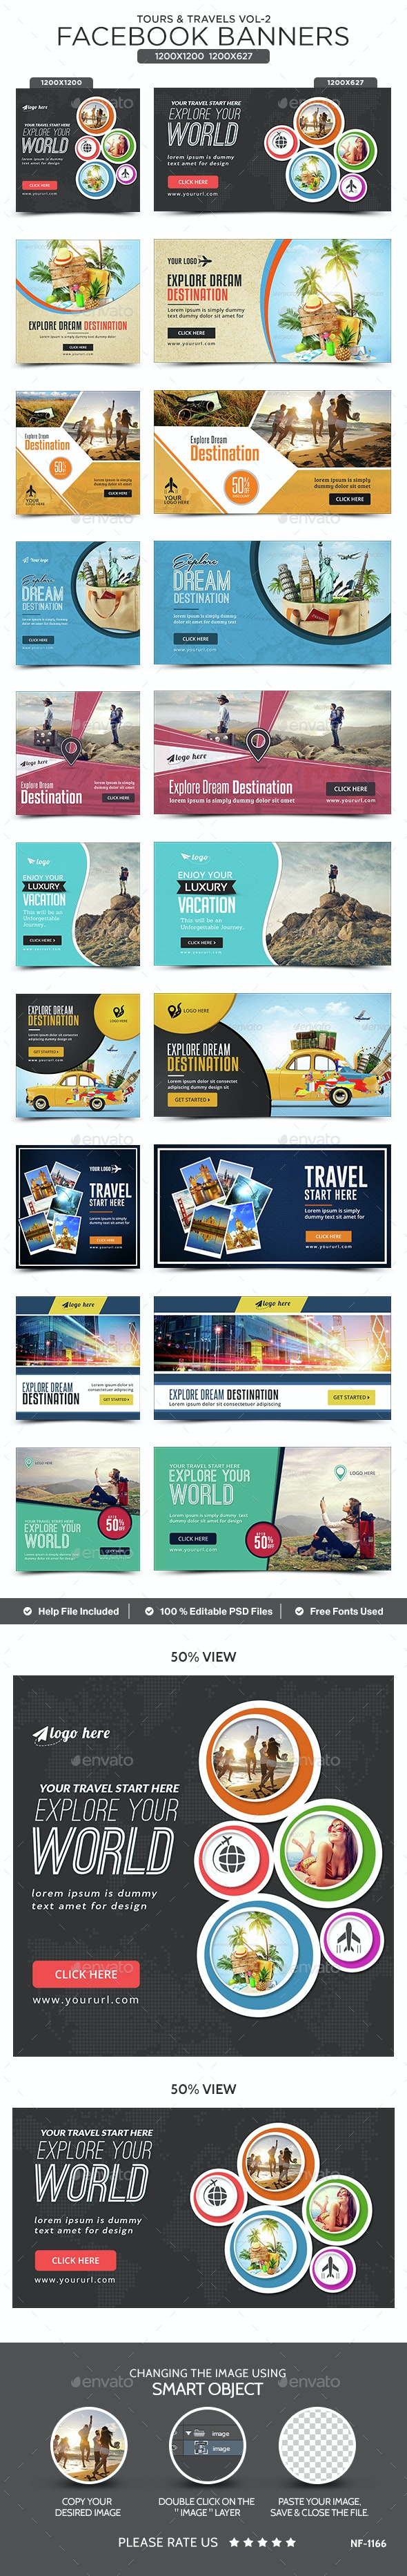 Tours & Travels Facebook Banners - 10 Designs - 20 Banners - Social Media Web Elements